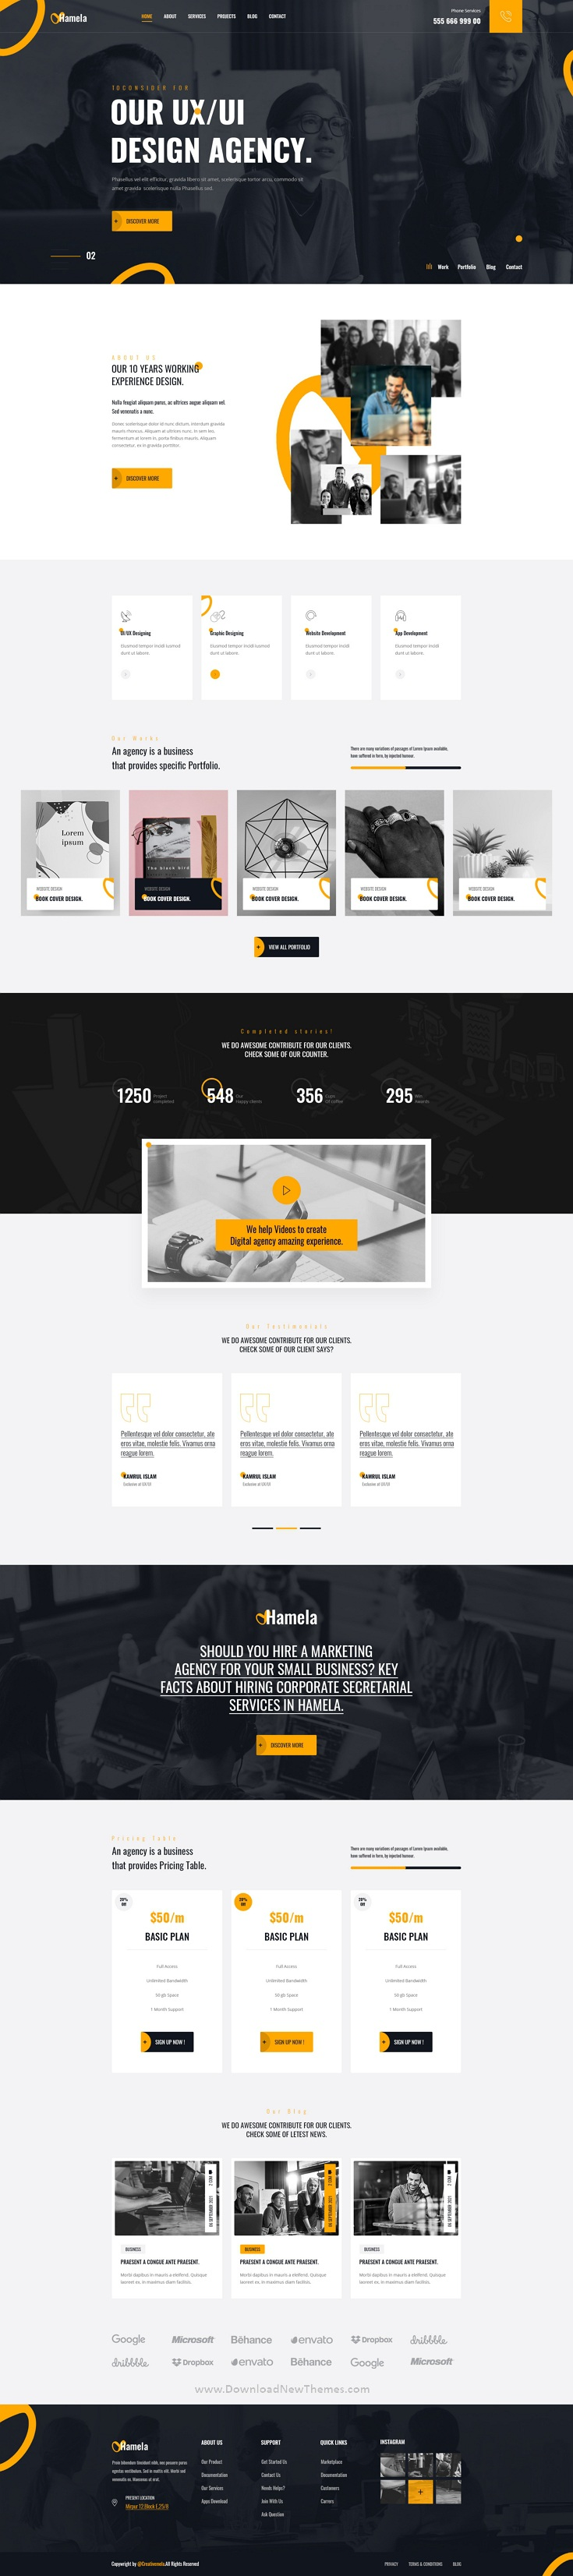 Digital Agency Services PSD Template